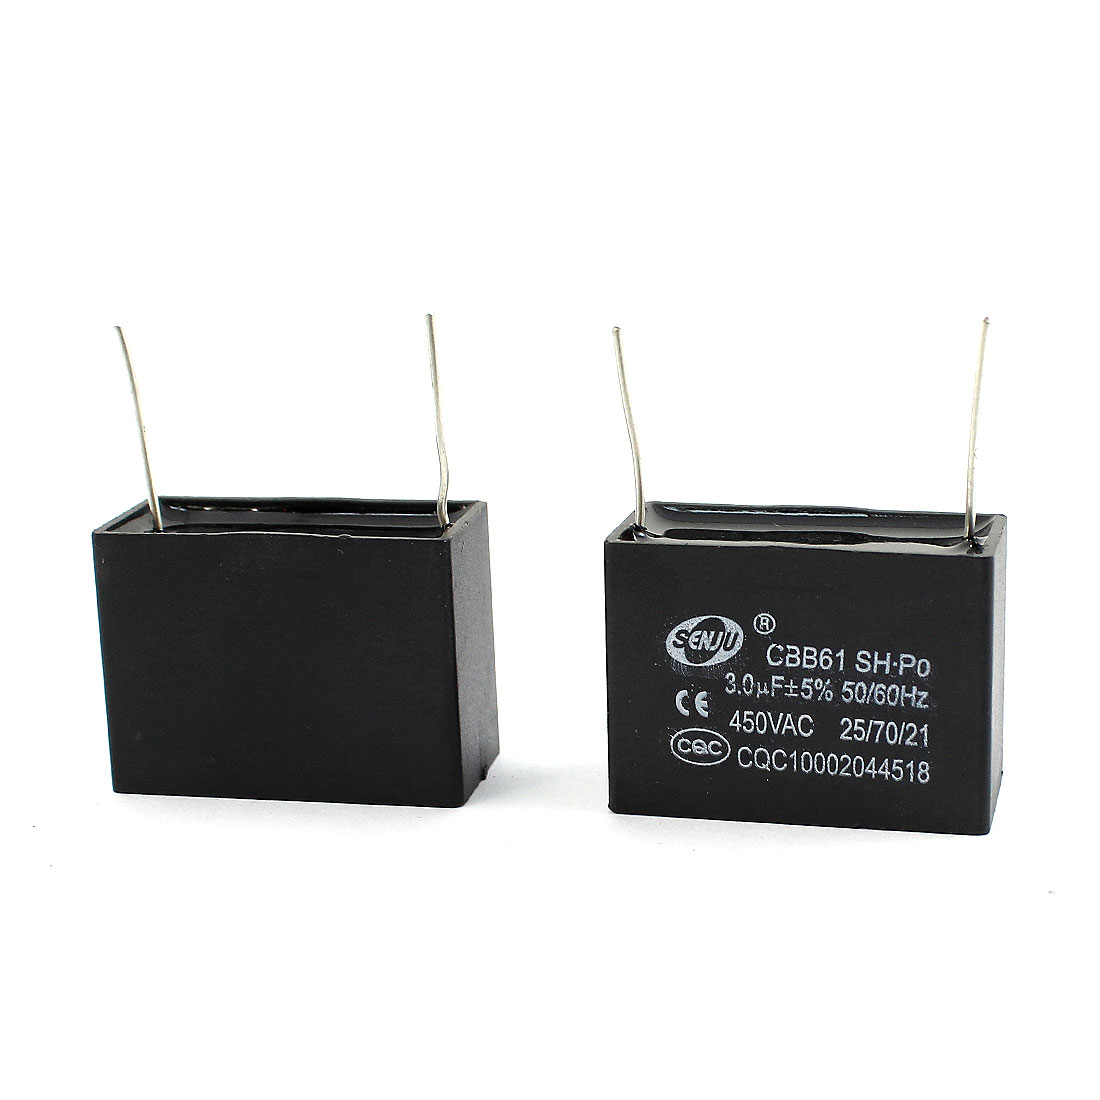 2 Pcs AC 450V 3uF 5% 2 Pin Radial Lead Type Non Polar Polypropylene Film Air Conditioner Motor Running Capacitor Black